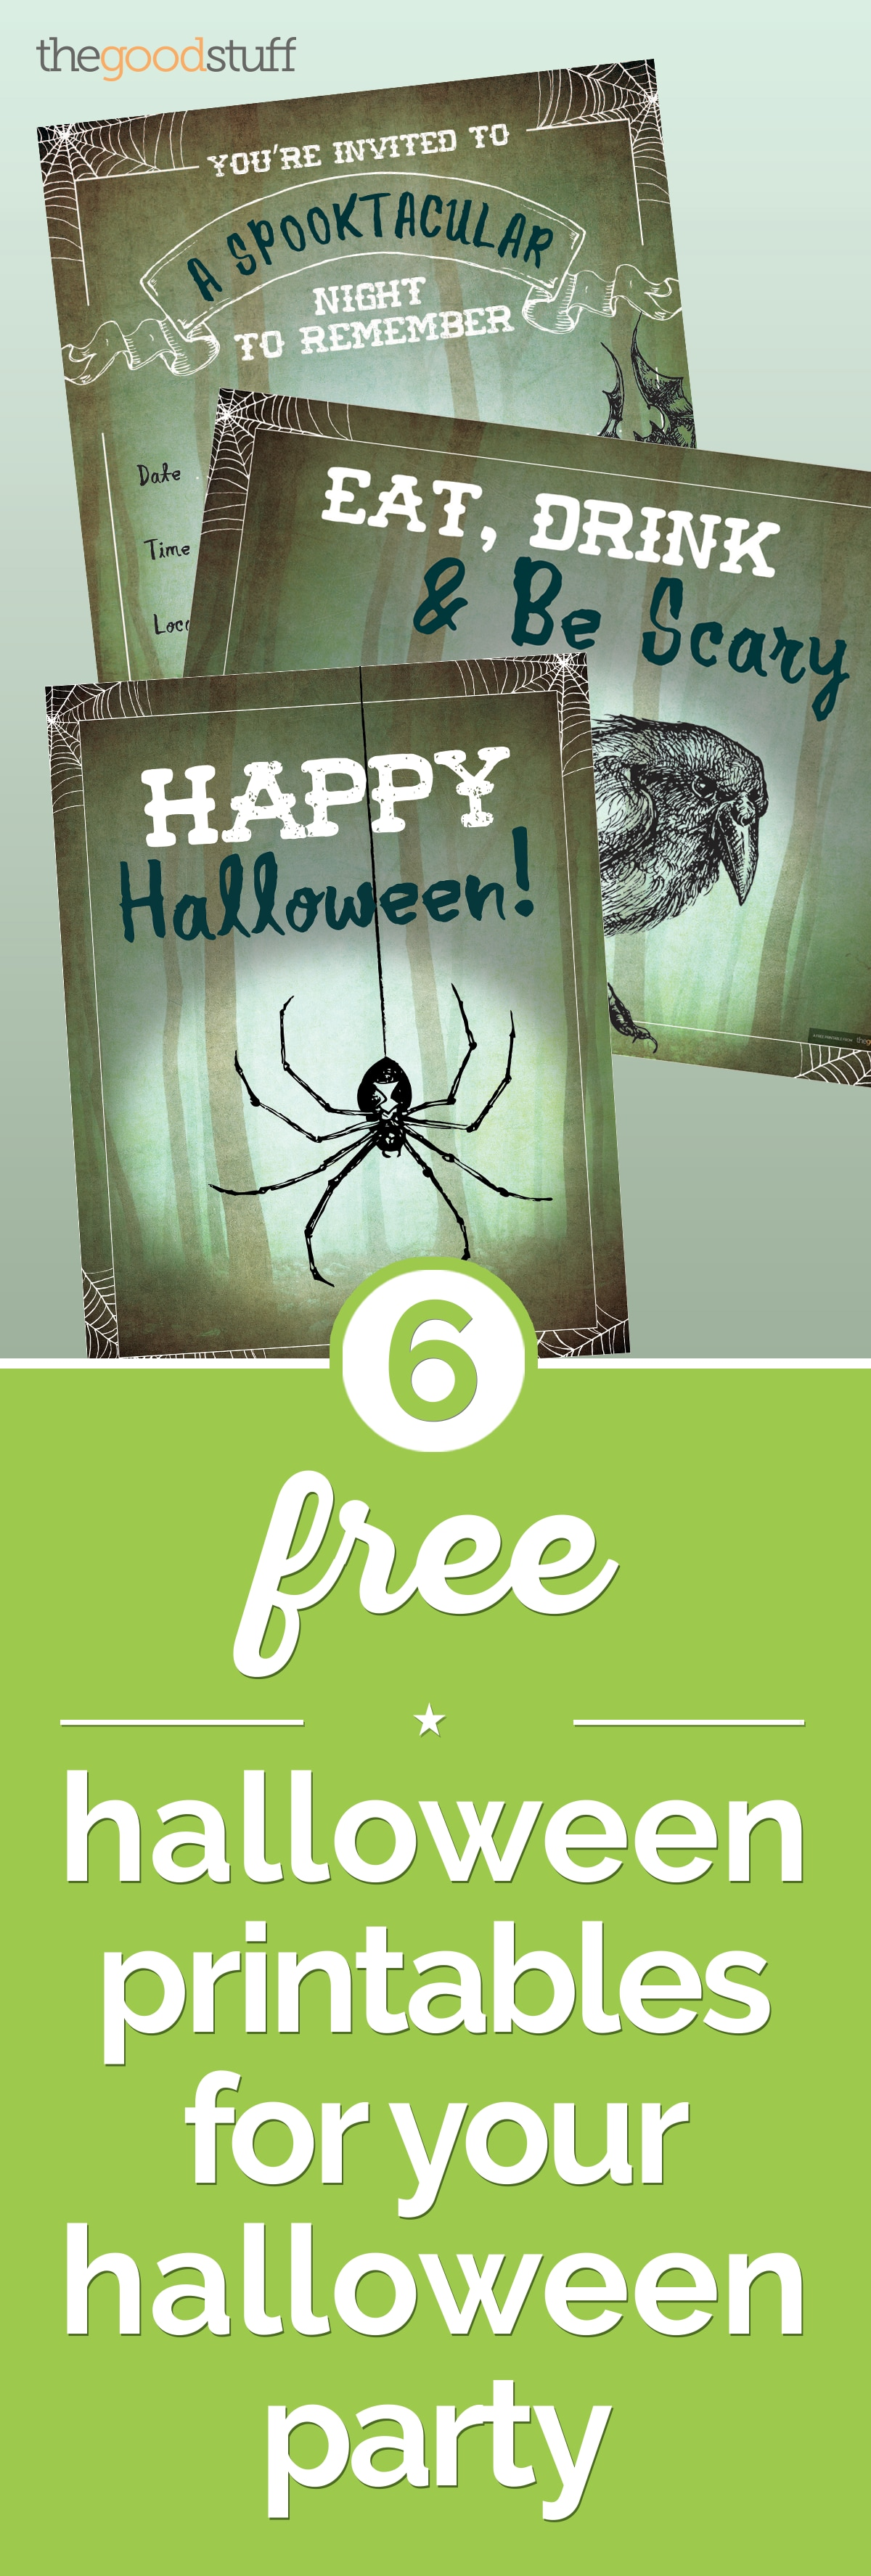 6 Free Halloween Printables for Your Halloween Party | thegoodstuff